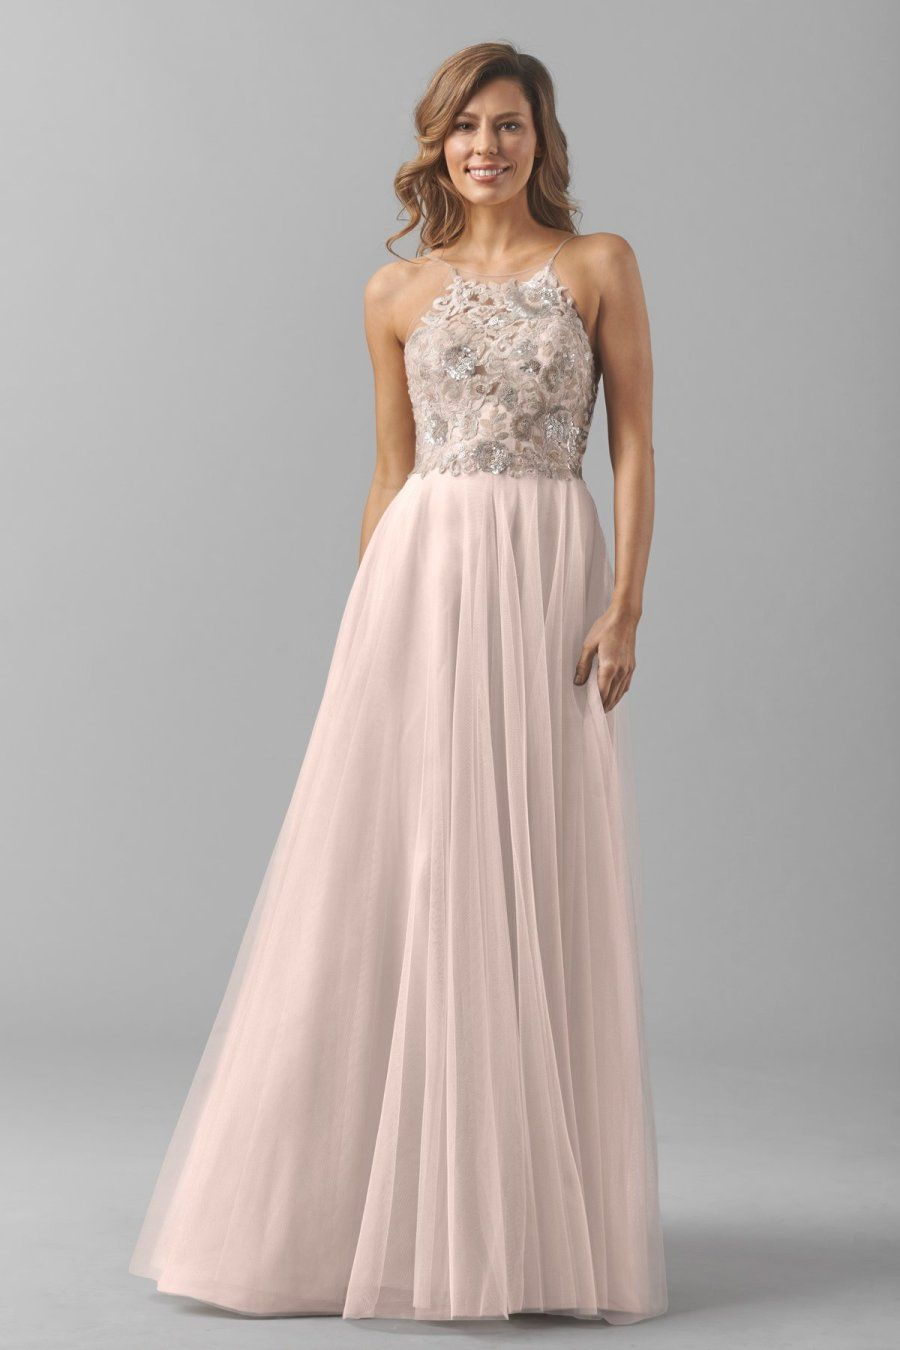 Get The Look Taylor Swifts Blush Gold Reem Acra Maid